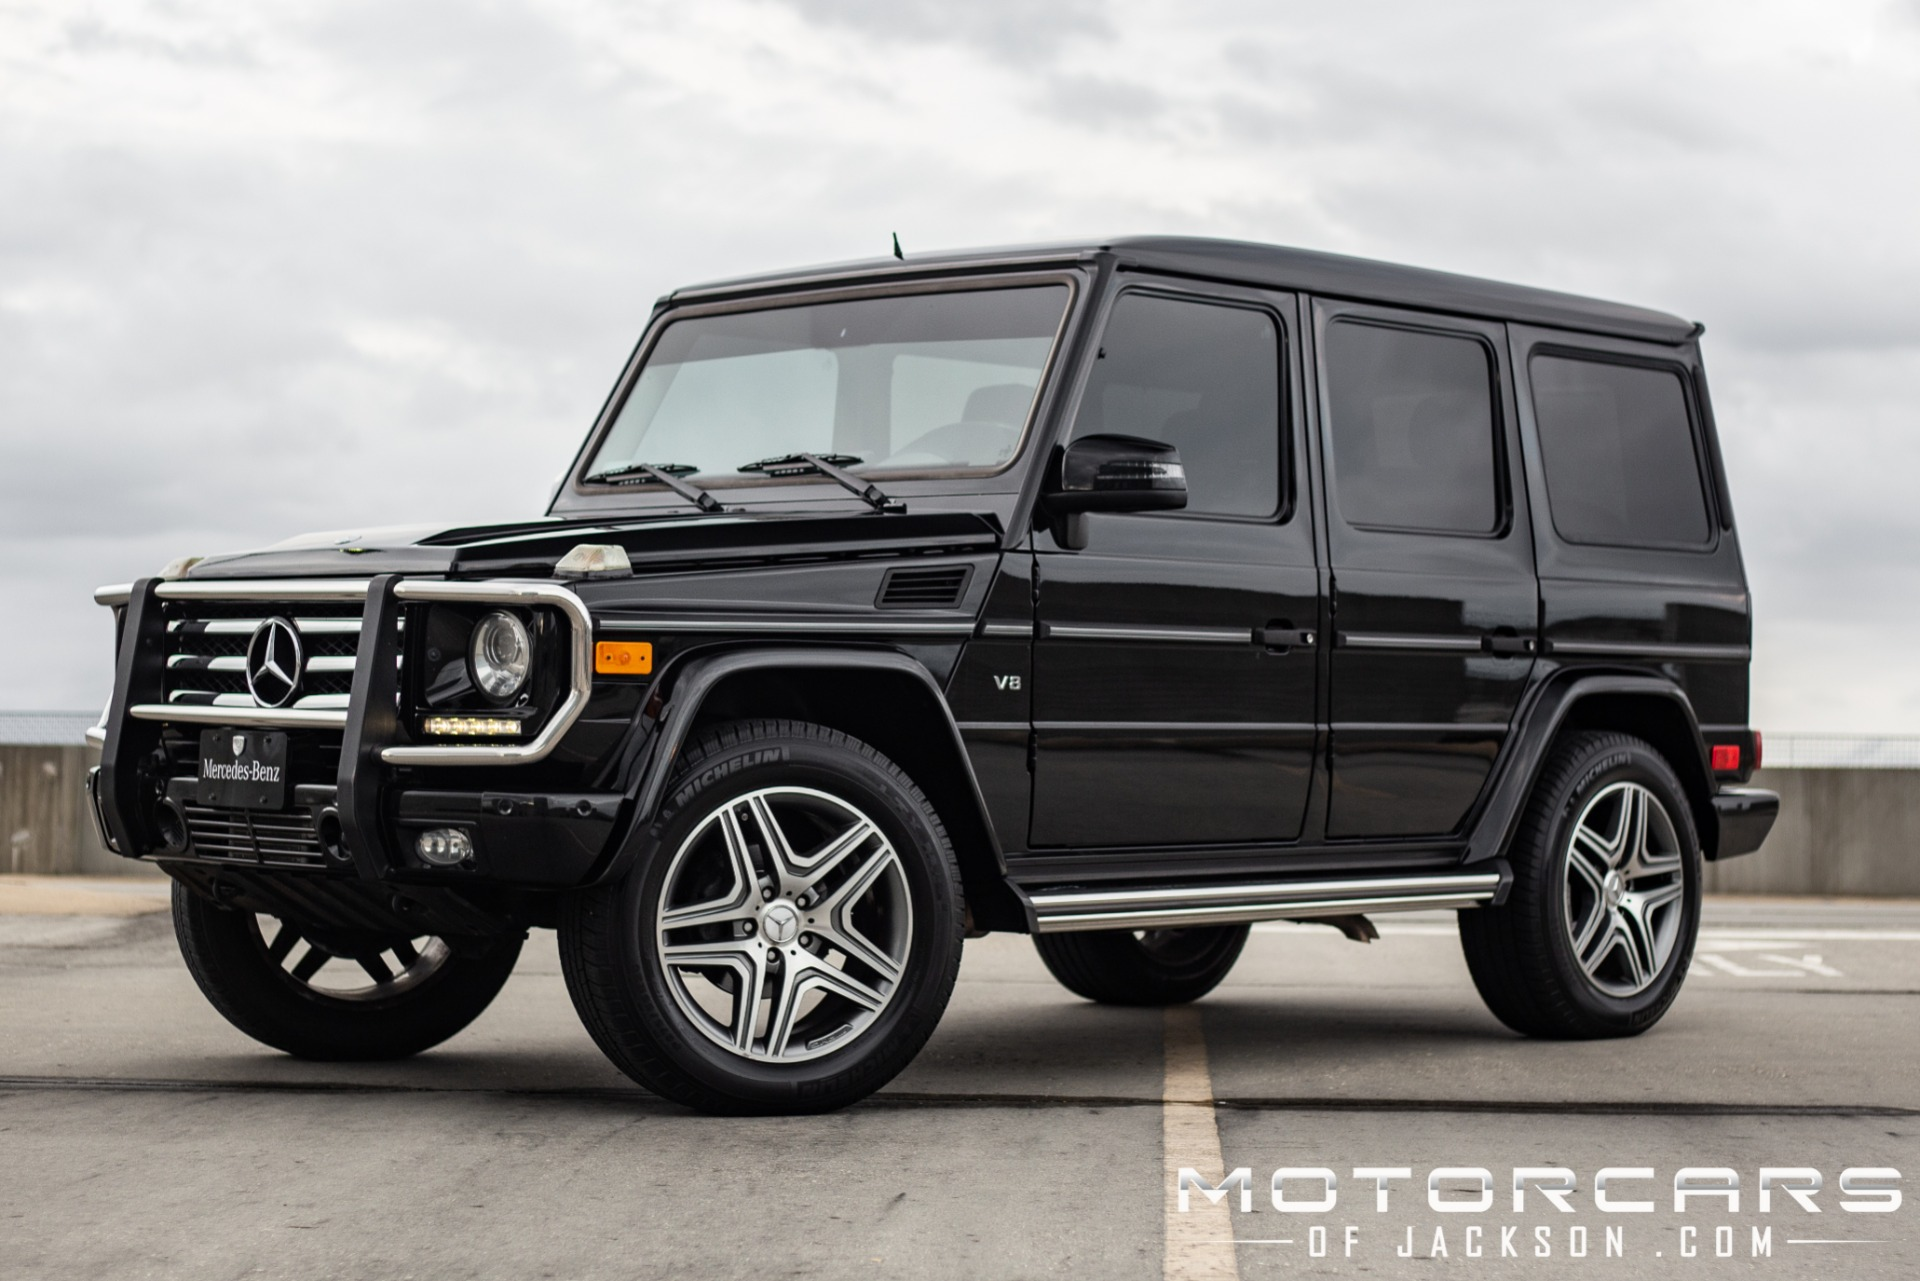 Used-2013-Mercedes-Benz-G-Class-G-550-for-sale-Jackson-MS